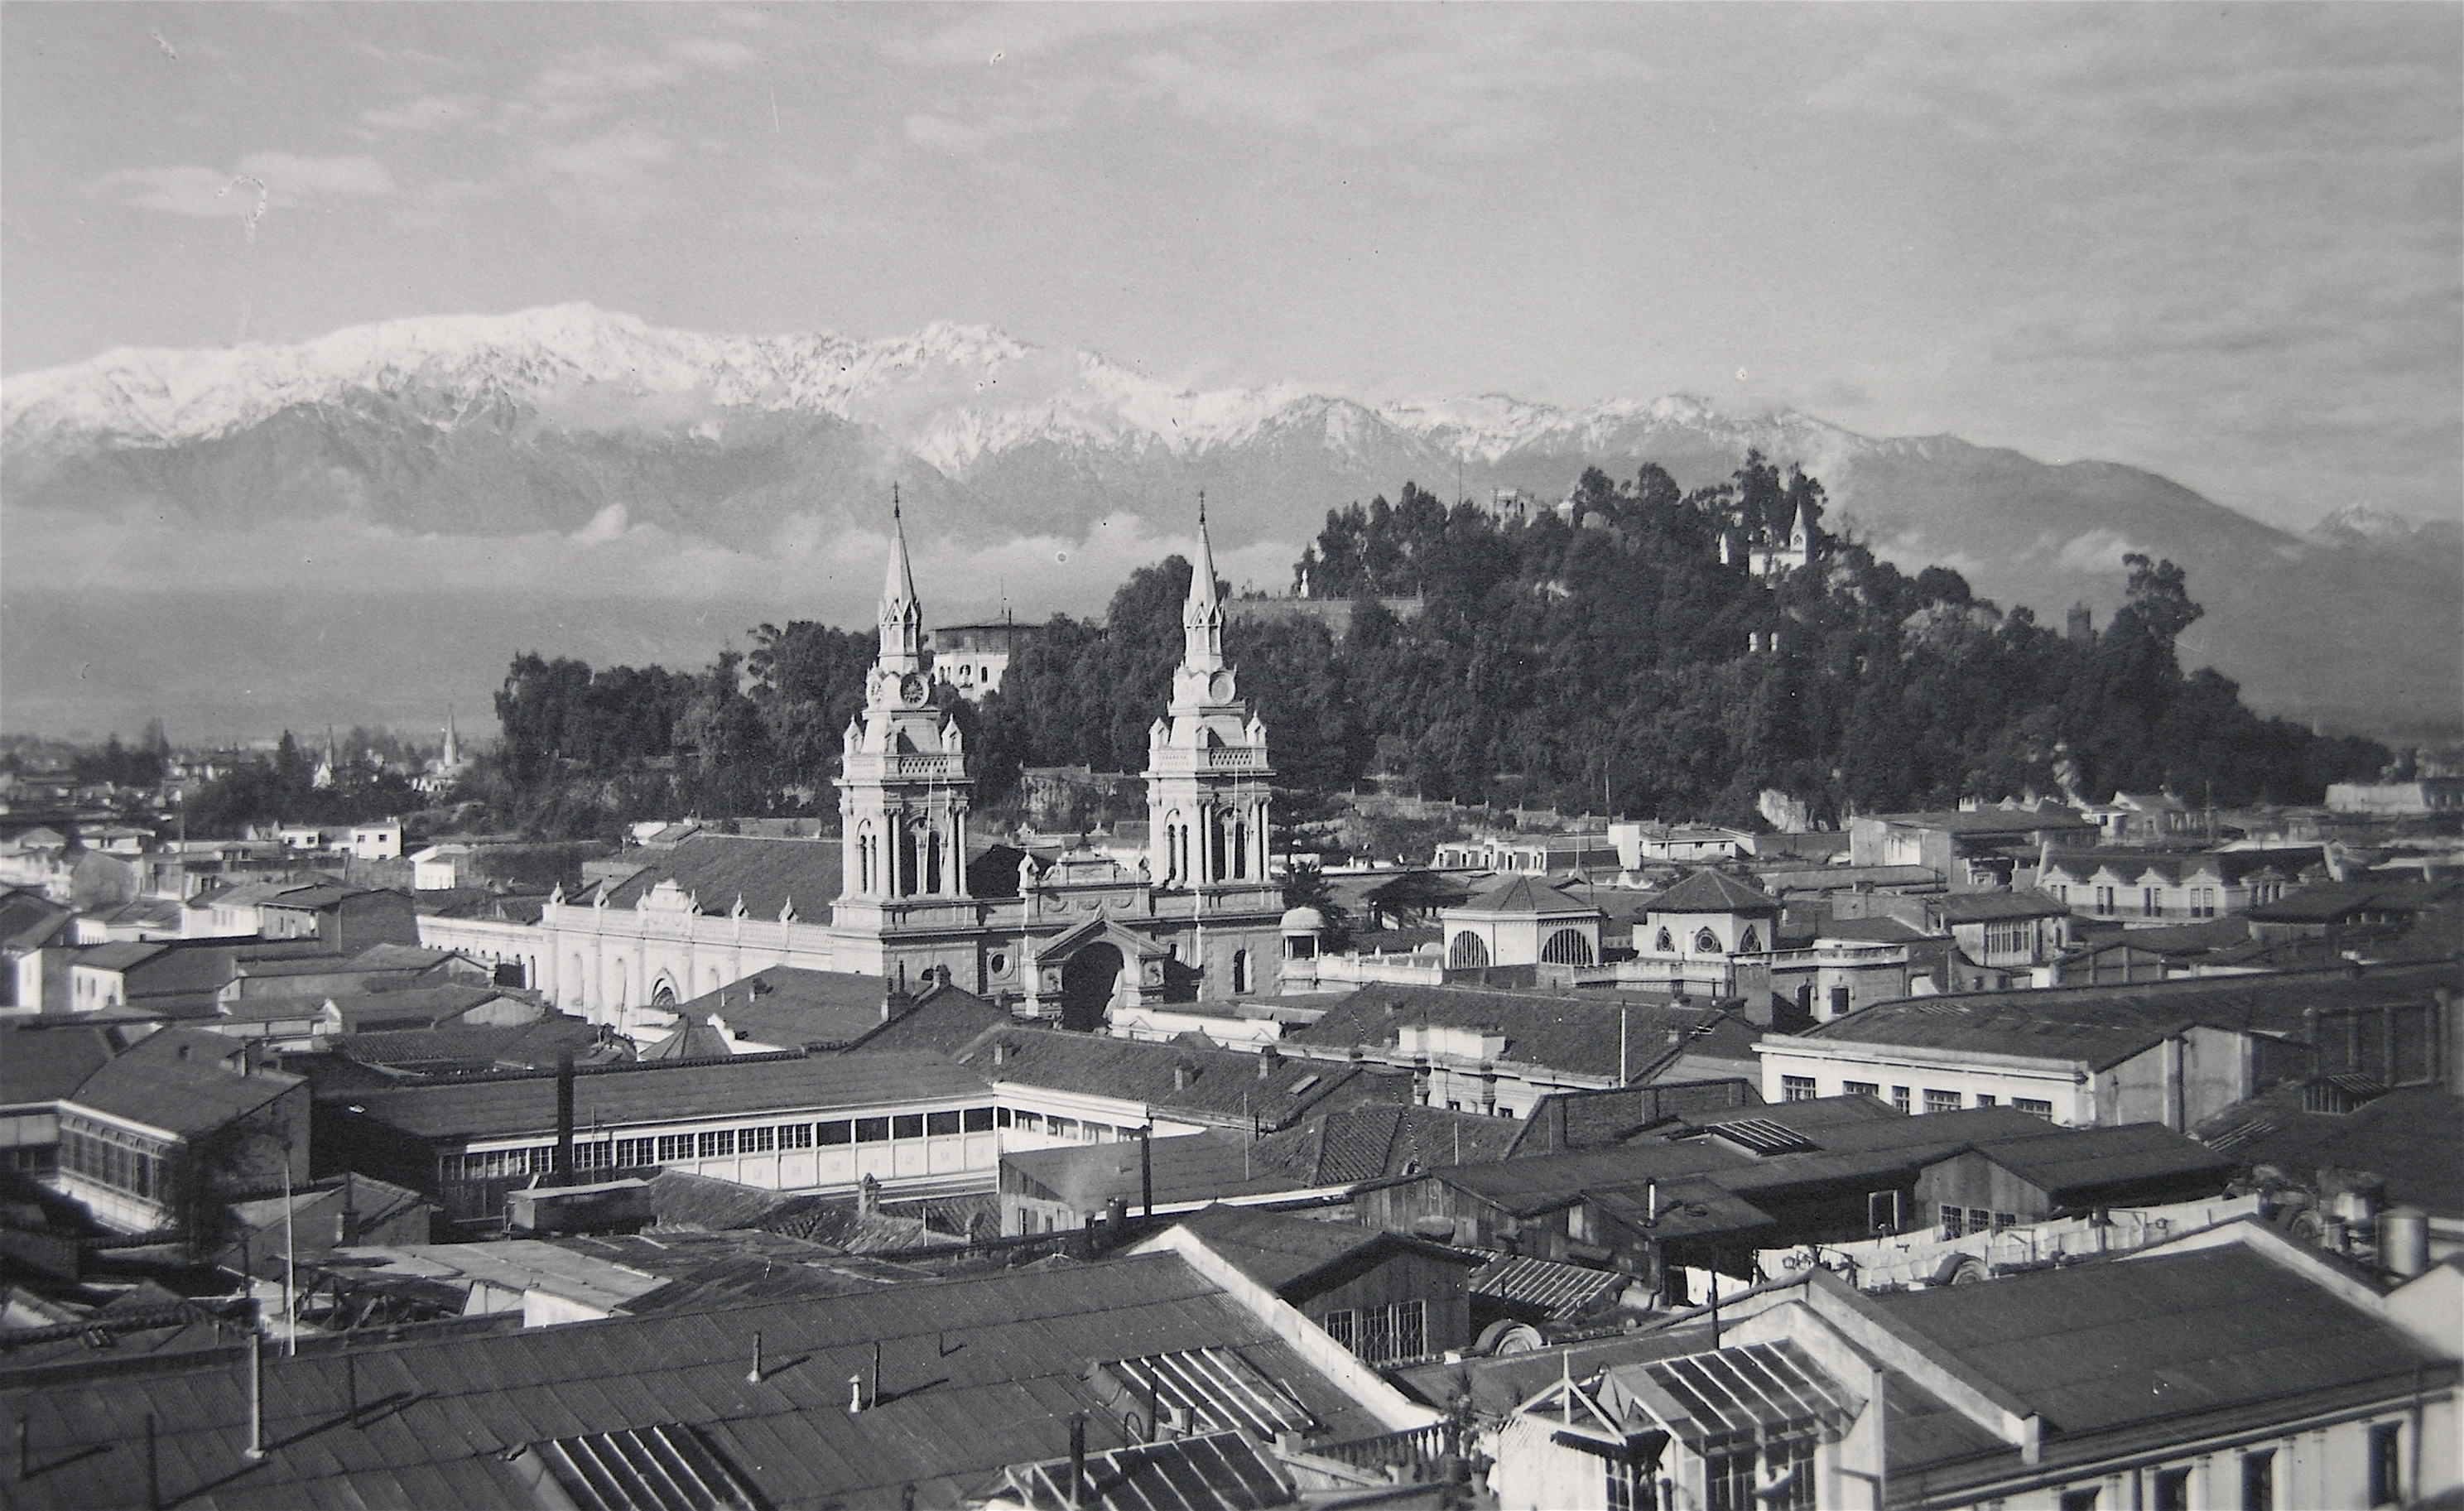 Enterreno - Fotos históricas de chile - fotos antiguas de Chile - Panorama de Santiago en 1933